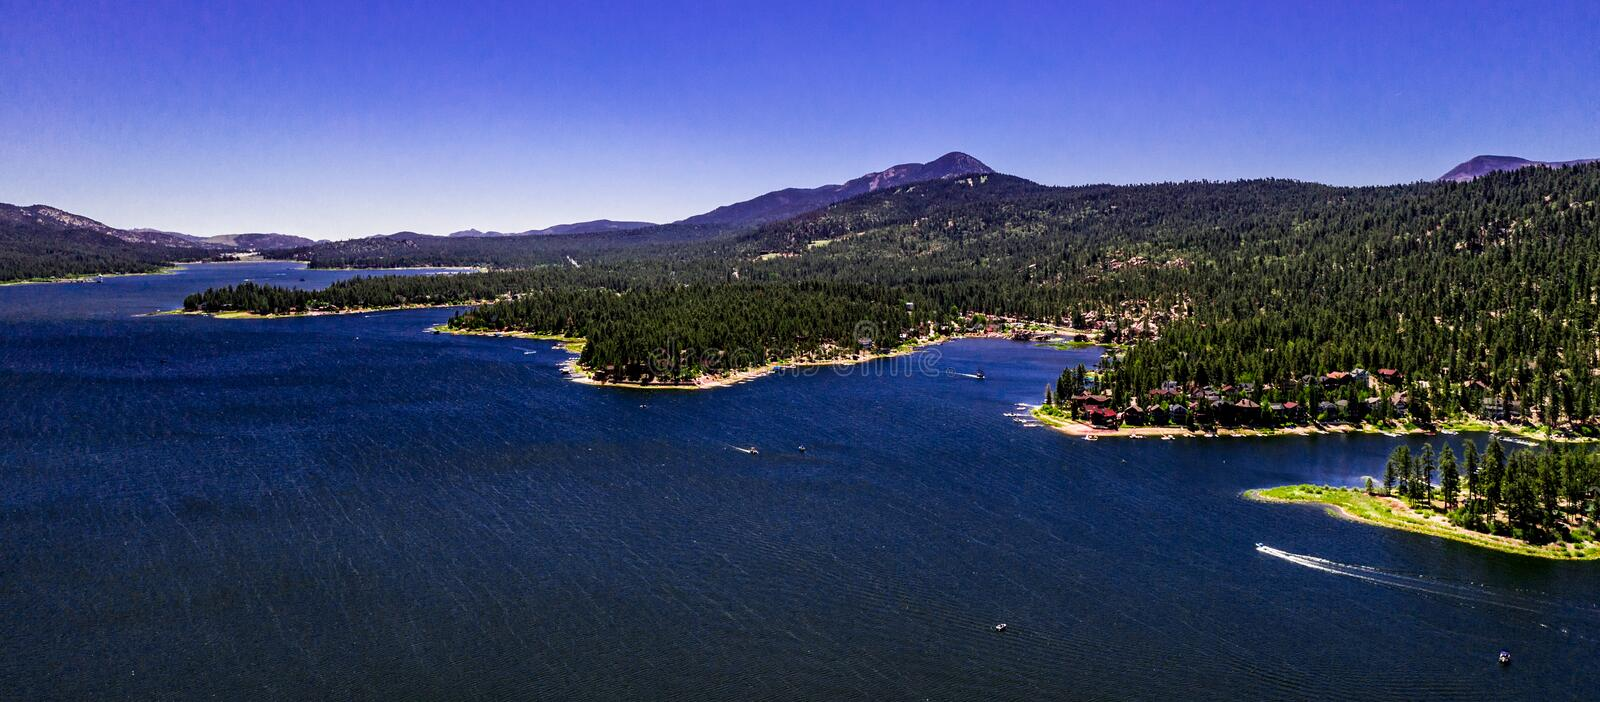 Aerial, Drone Landscape Over Big Bear Lake, California. Aerial, drone panorama of resort Big Bear Lake, California in the San Bernardino Mountains with clear royalty free stock photos